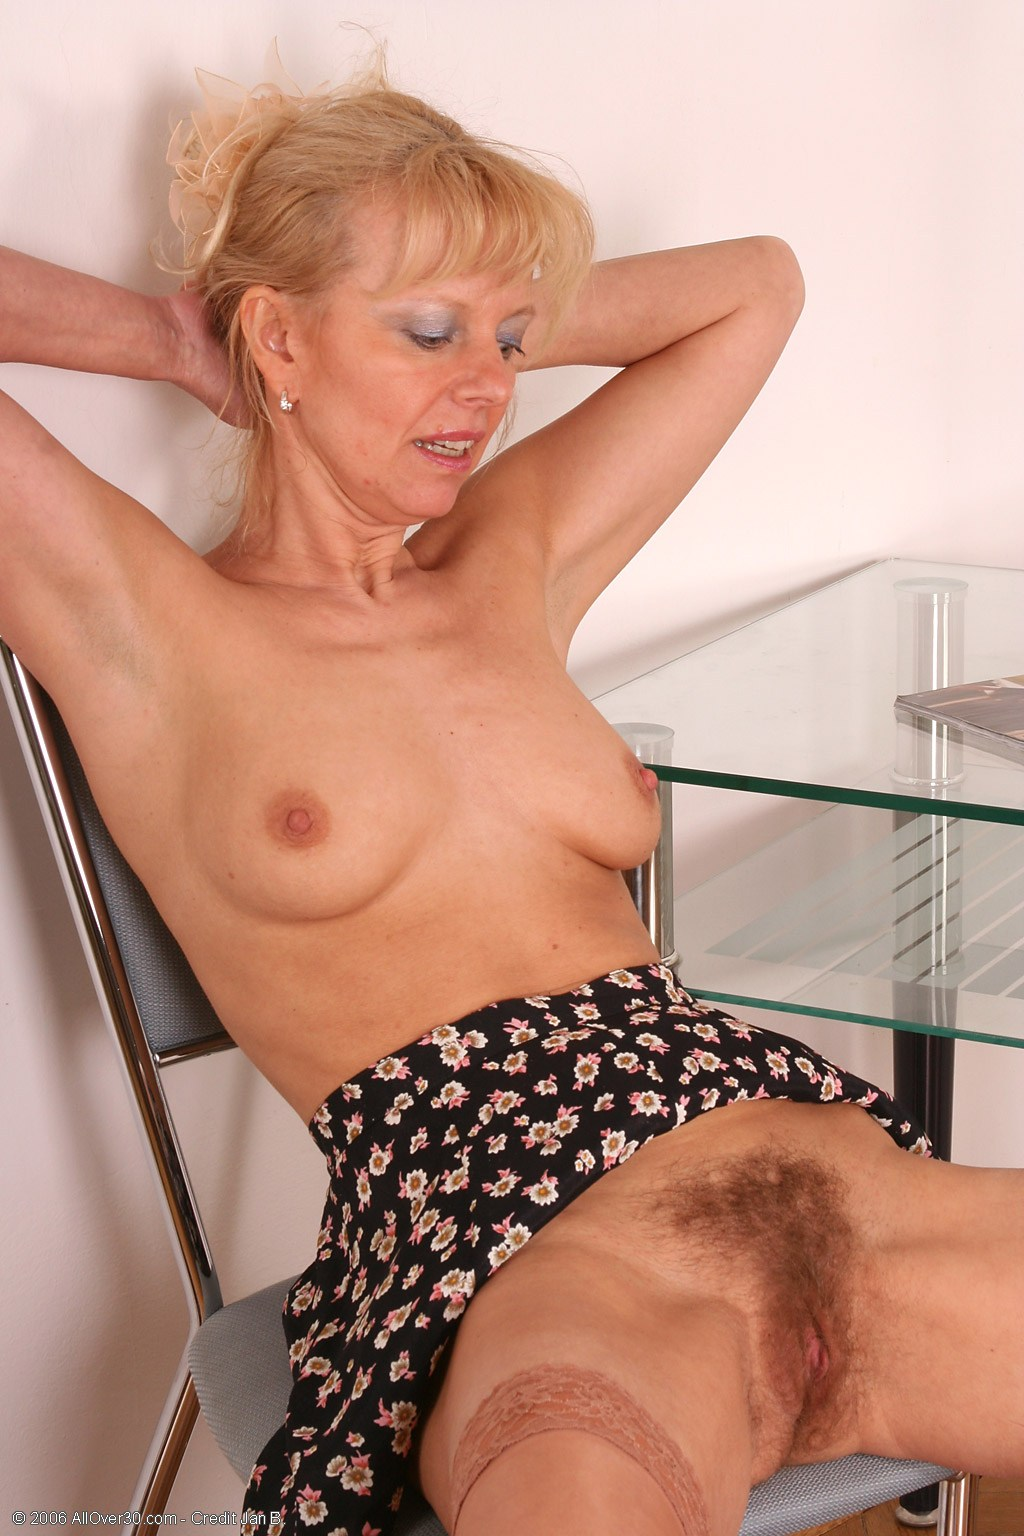 Older Women Who Like To Fuck